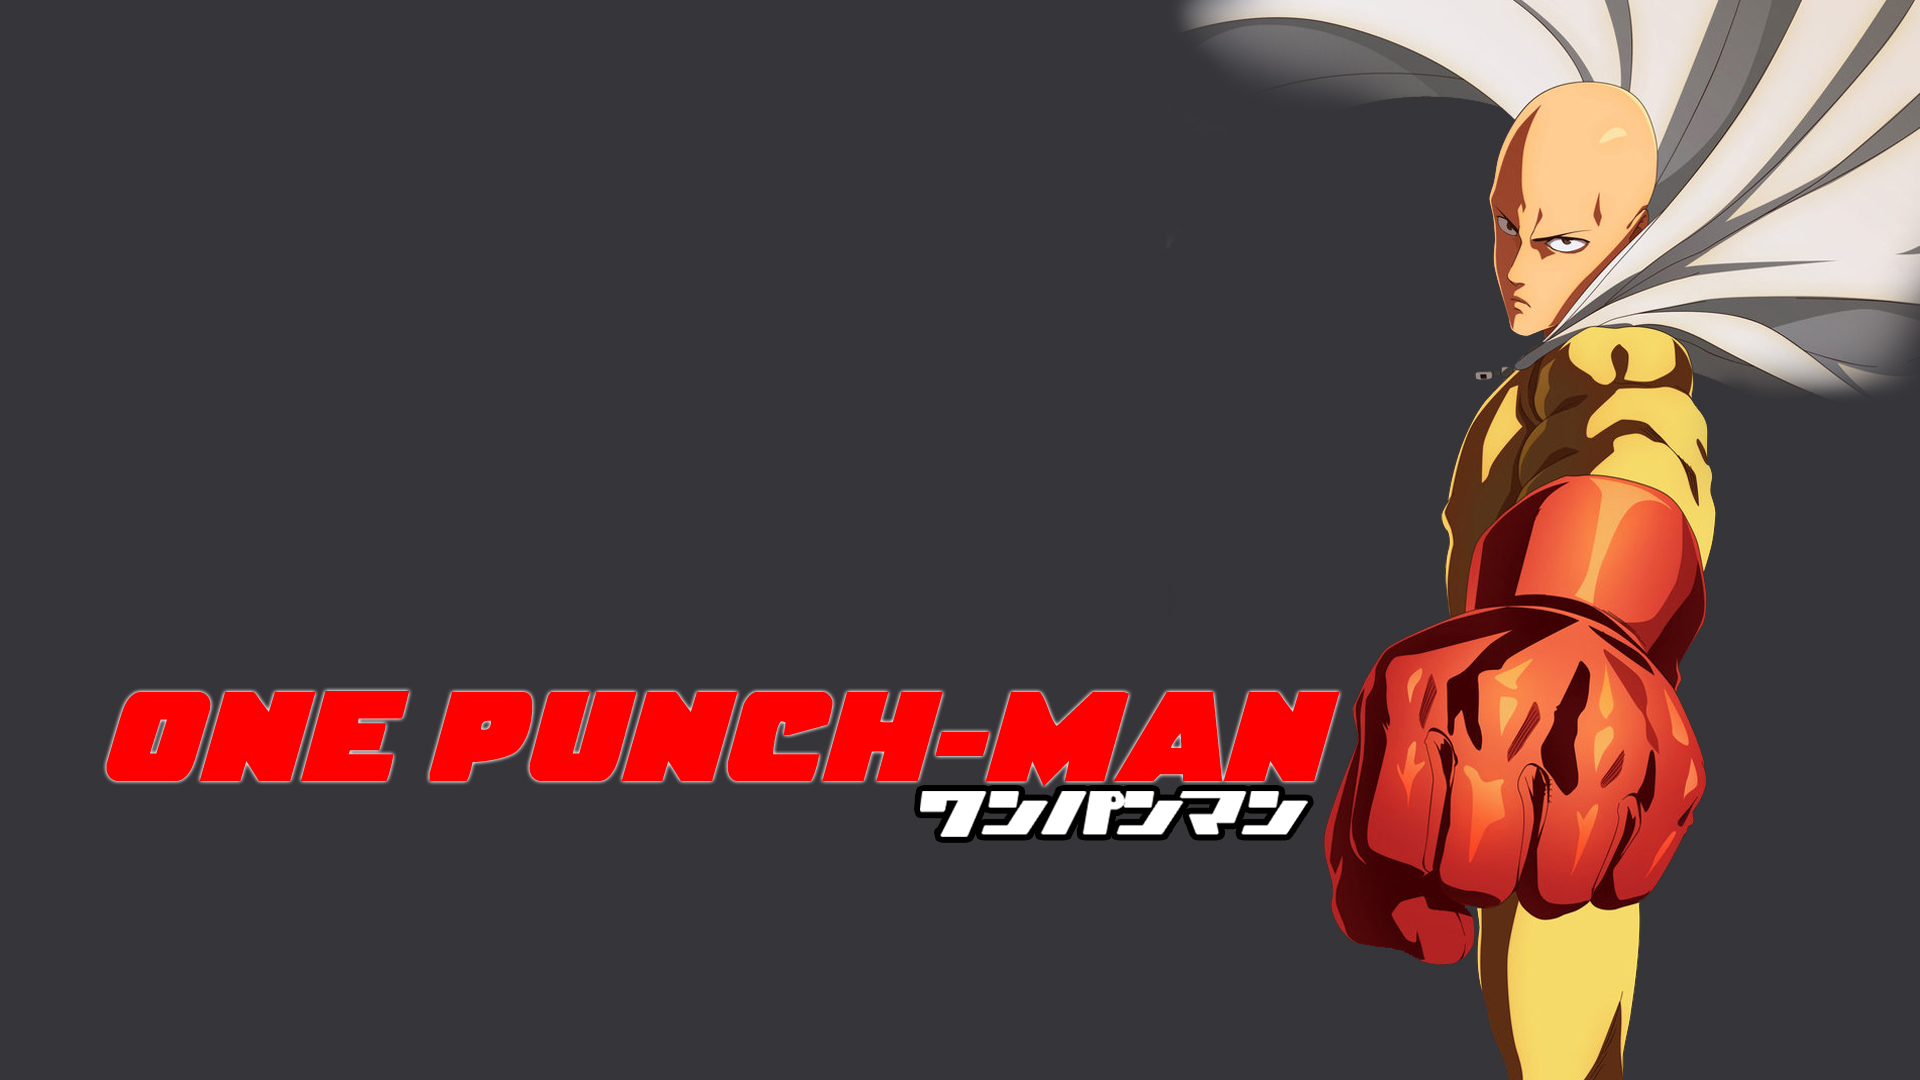 Download One Punch Man Hand Fight Computer Wallpapers Desktop